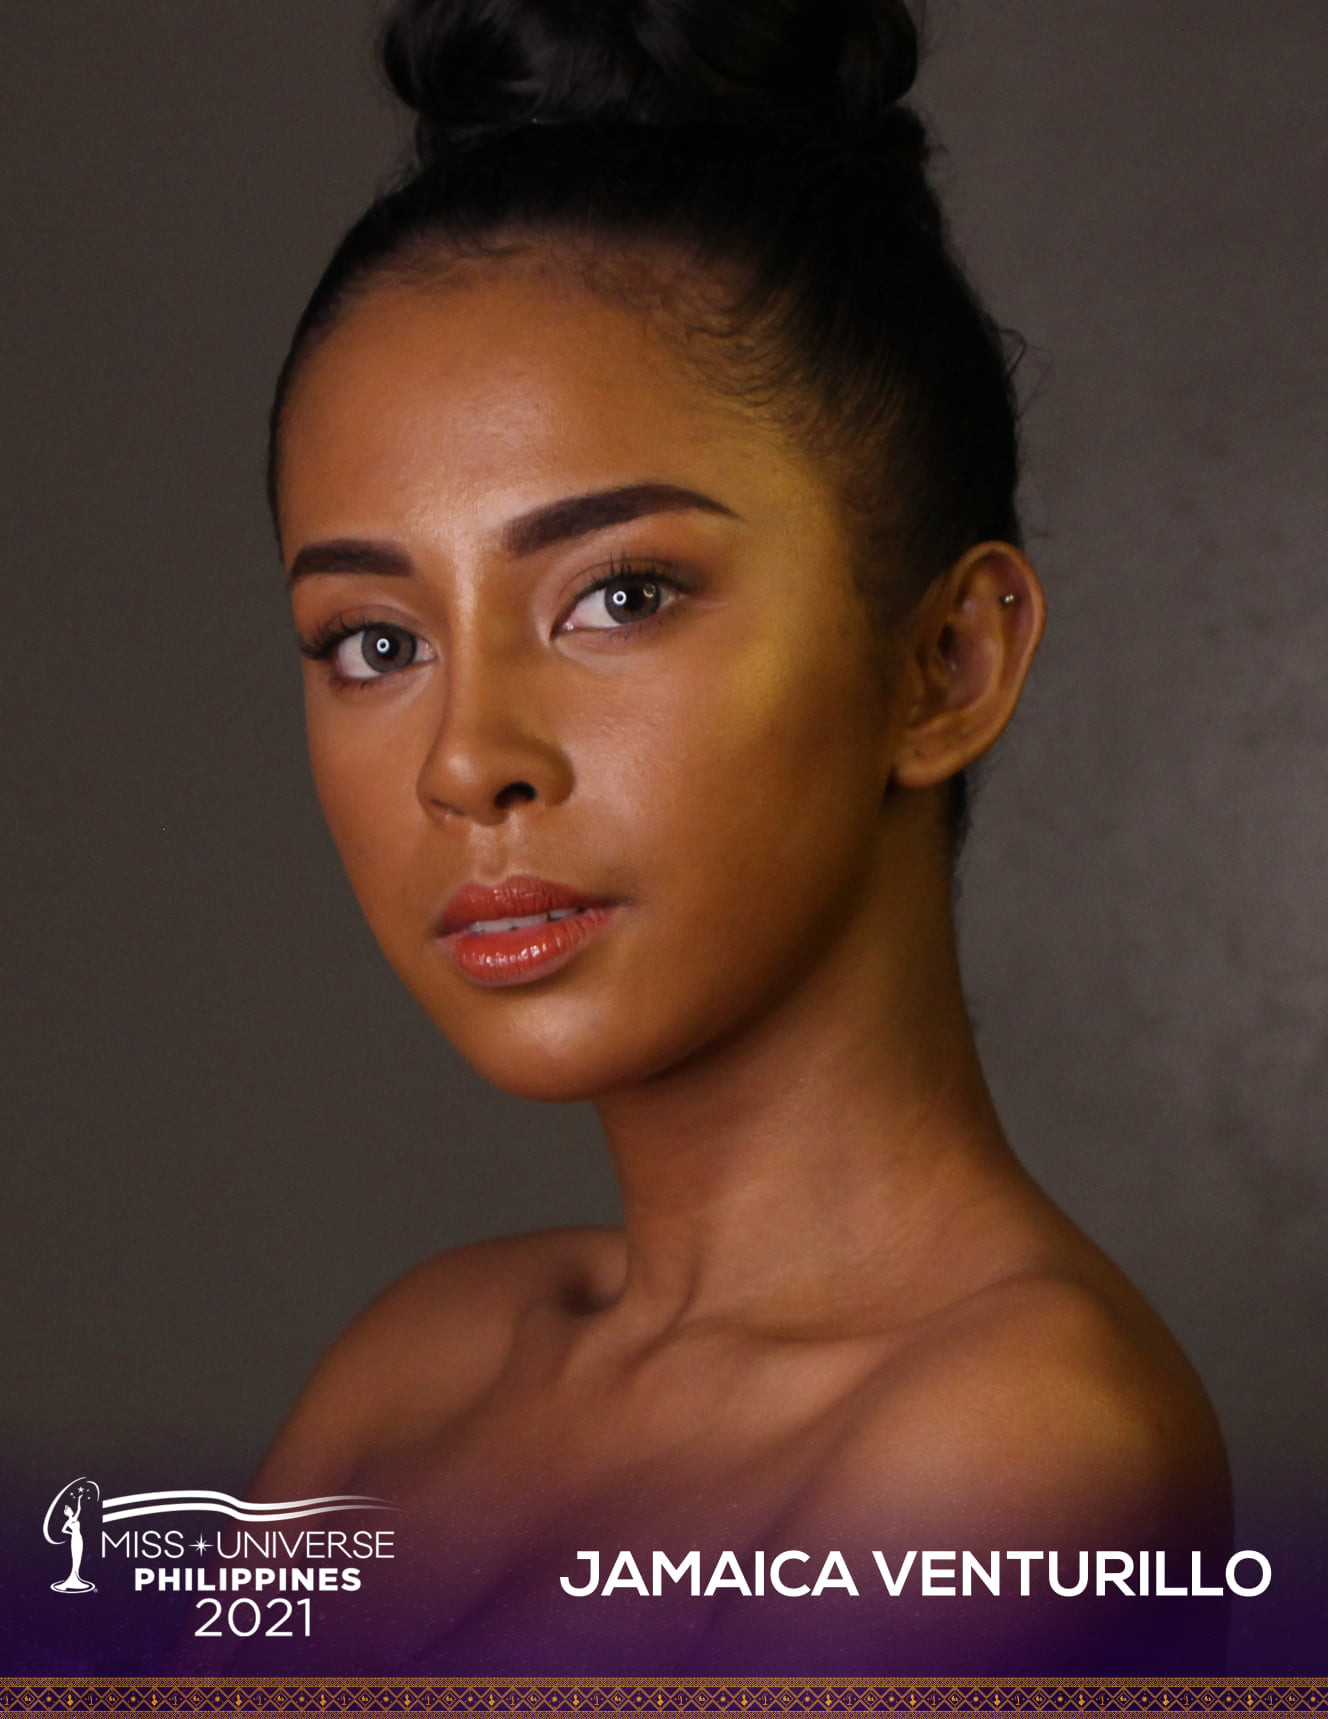 pre-candidatas a miss universe philippines 2021. AlF3jj